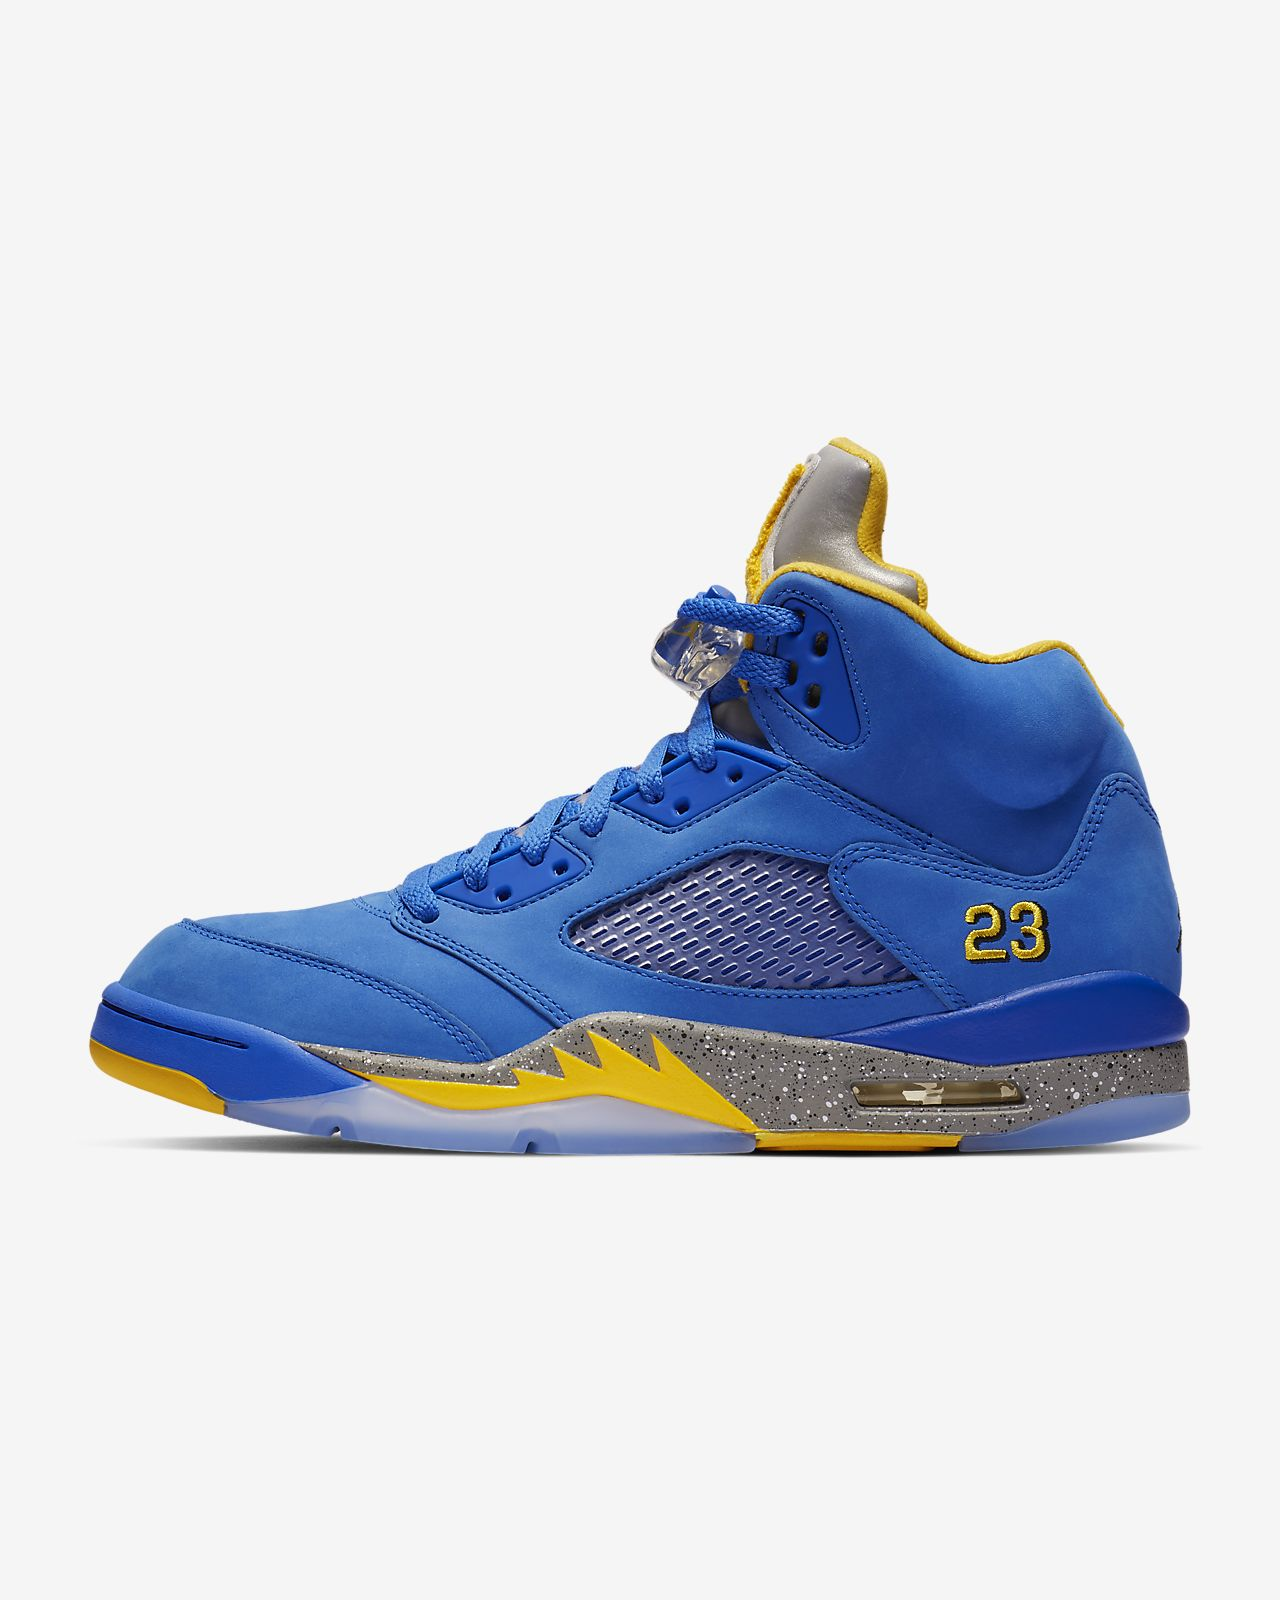 Air Jordan 5 Laney JSP Men's Shoe